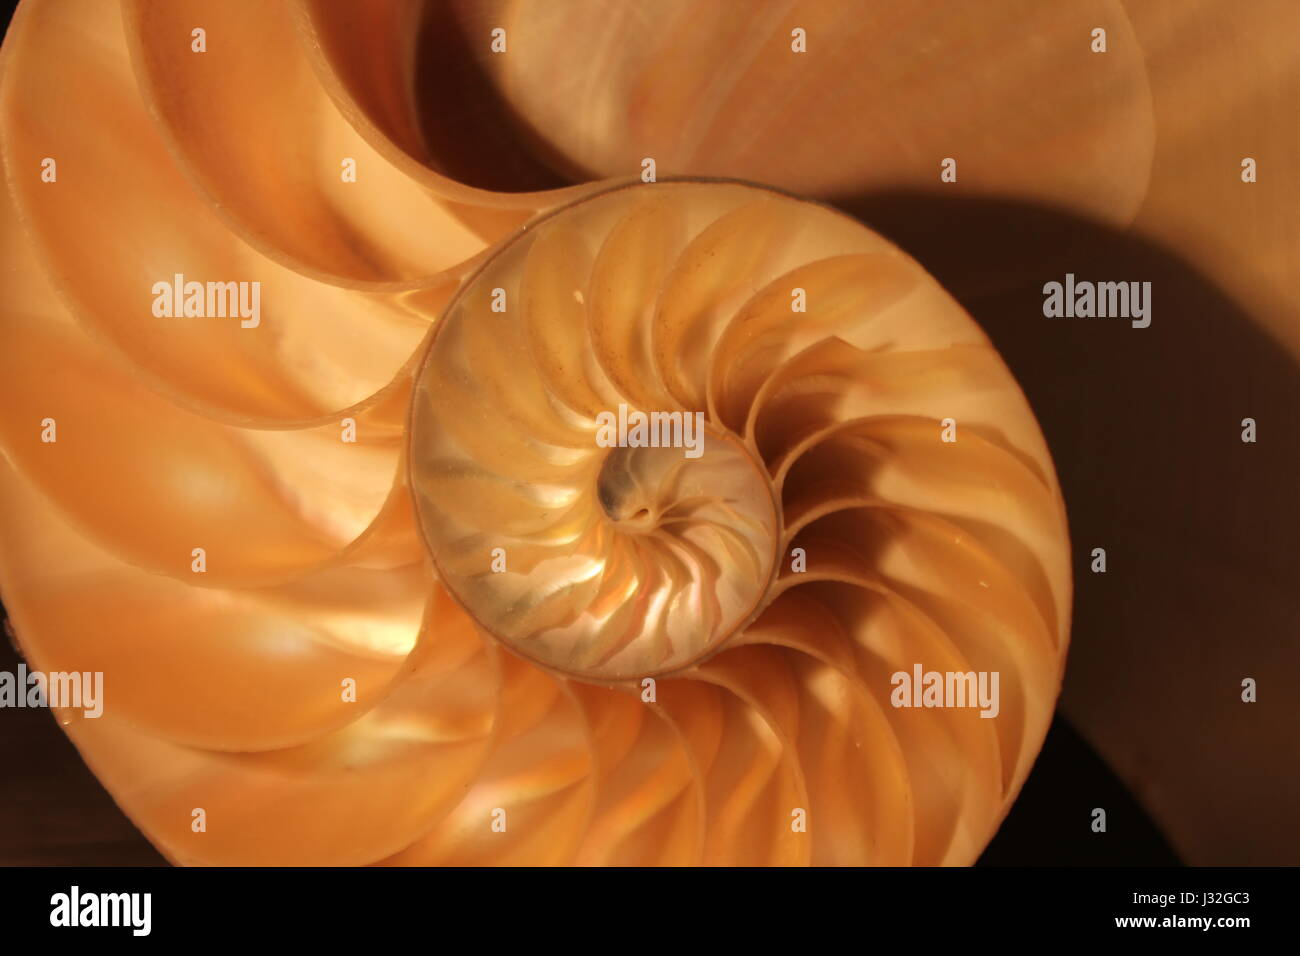 cross snail shell section stockfotos cross snail shell section bilder alamy. Black Bedroom Furniture Sets. Home Design Ideas